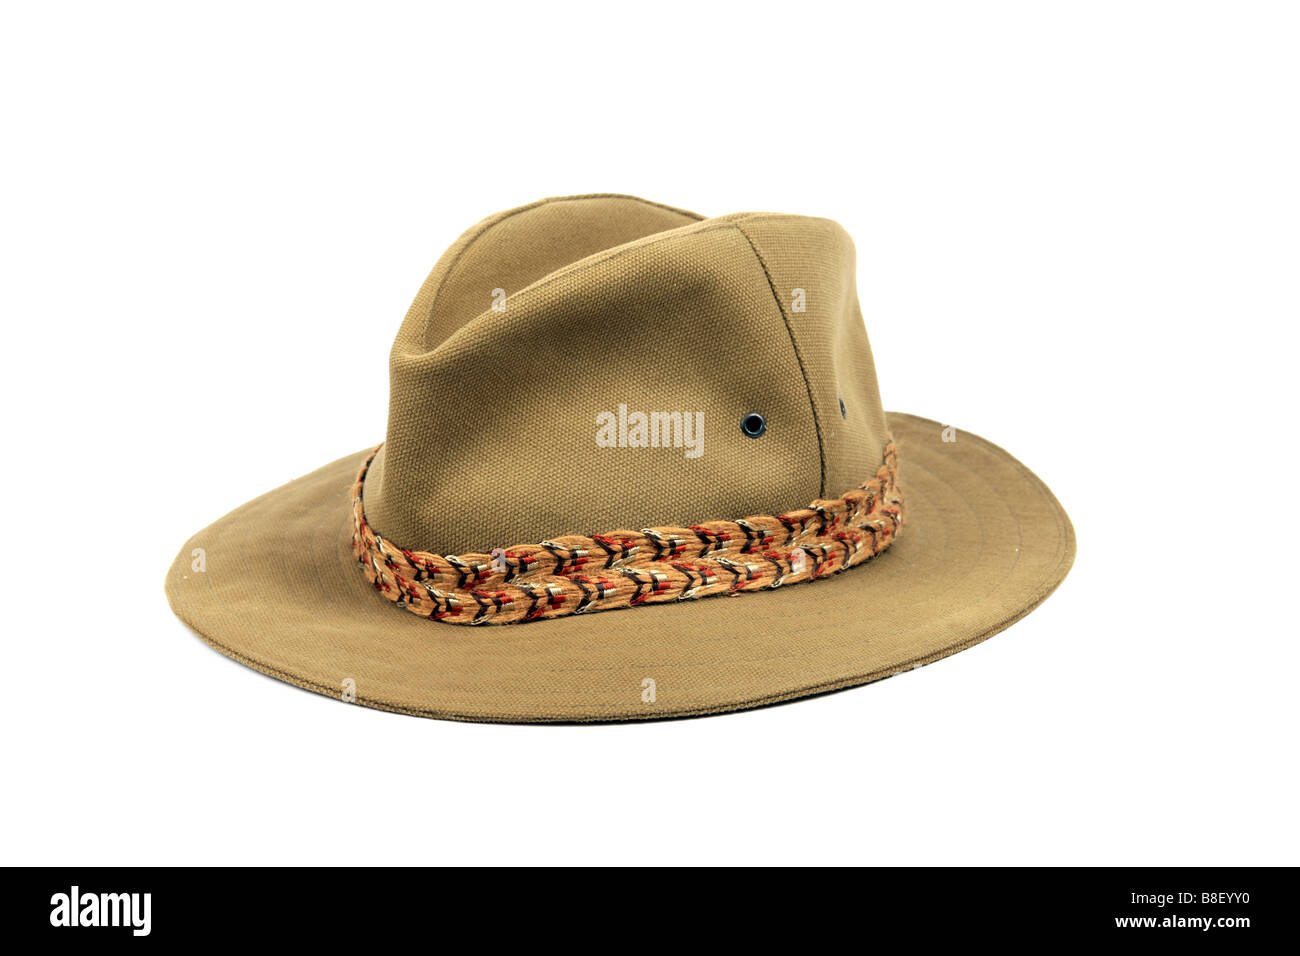 265c90e18 Safari Hat Stock Photos & Safari Hat Stock Images - Alamy